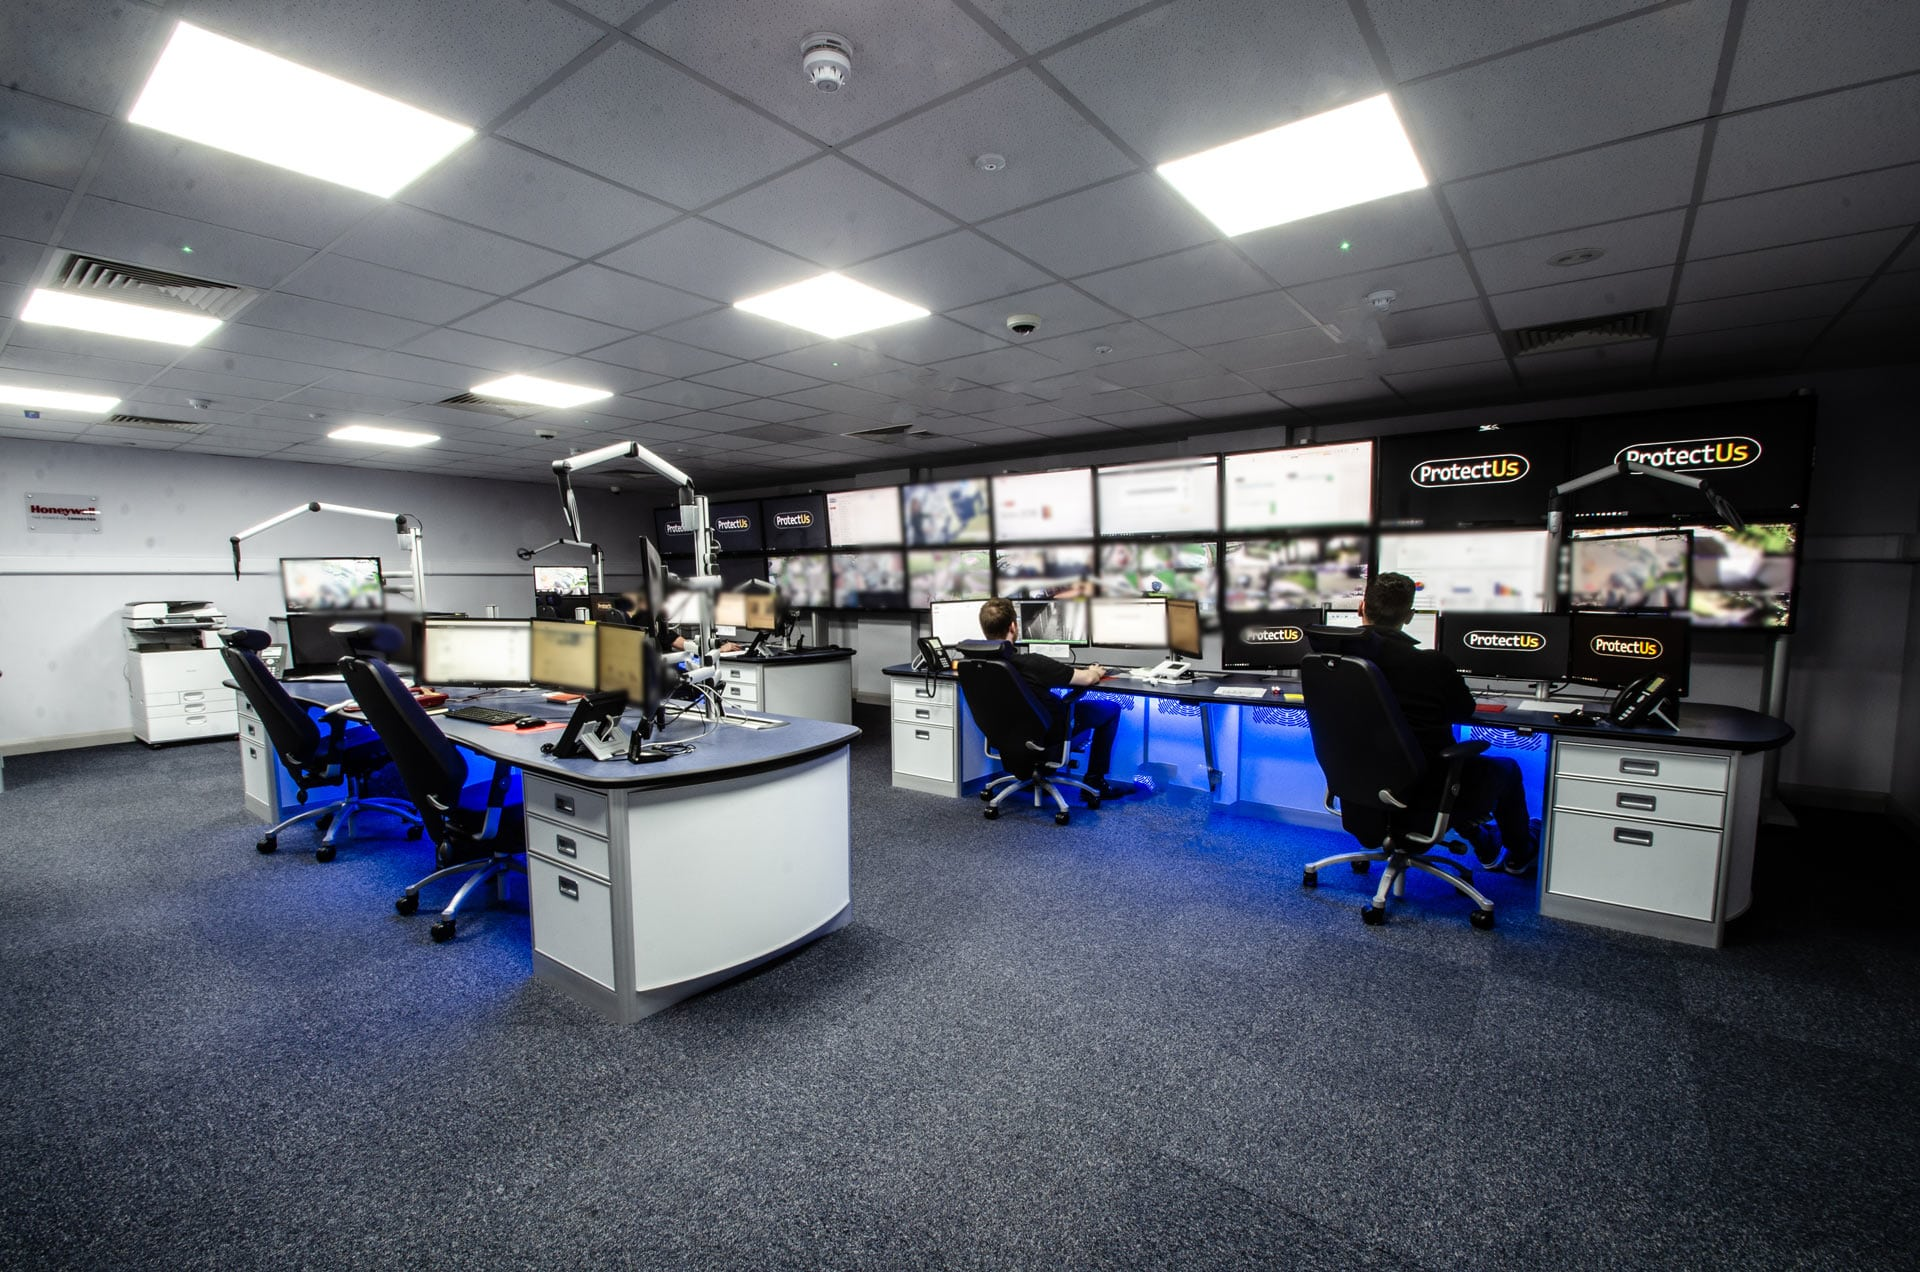 mansfield-arc-control-room-main-image